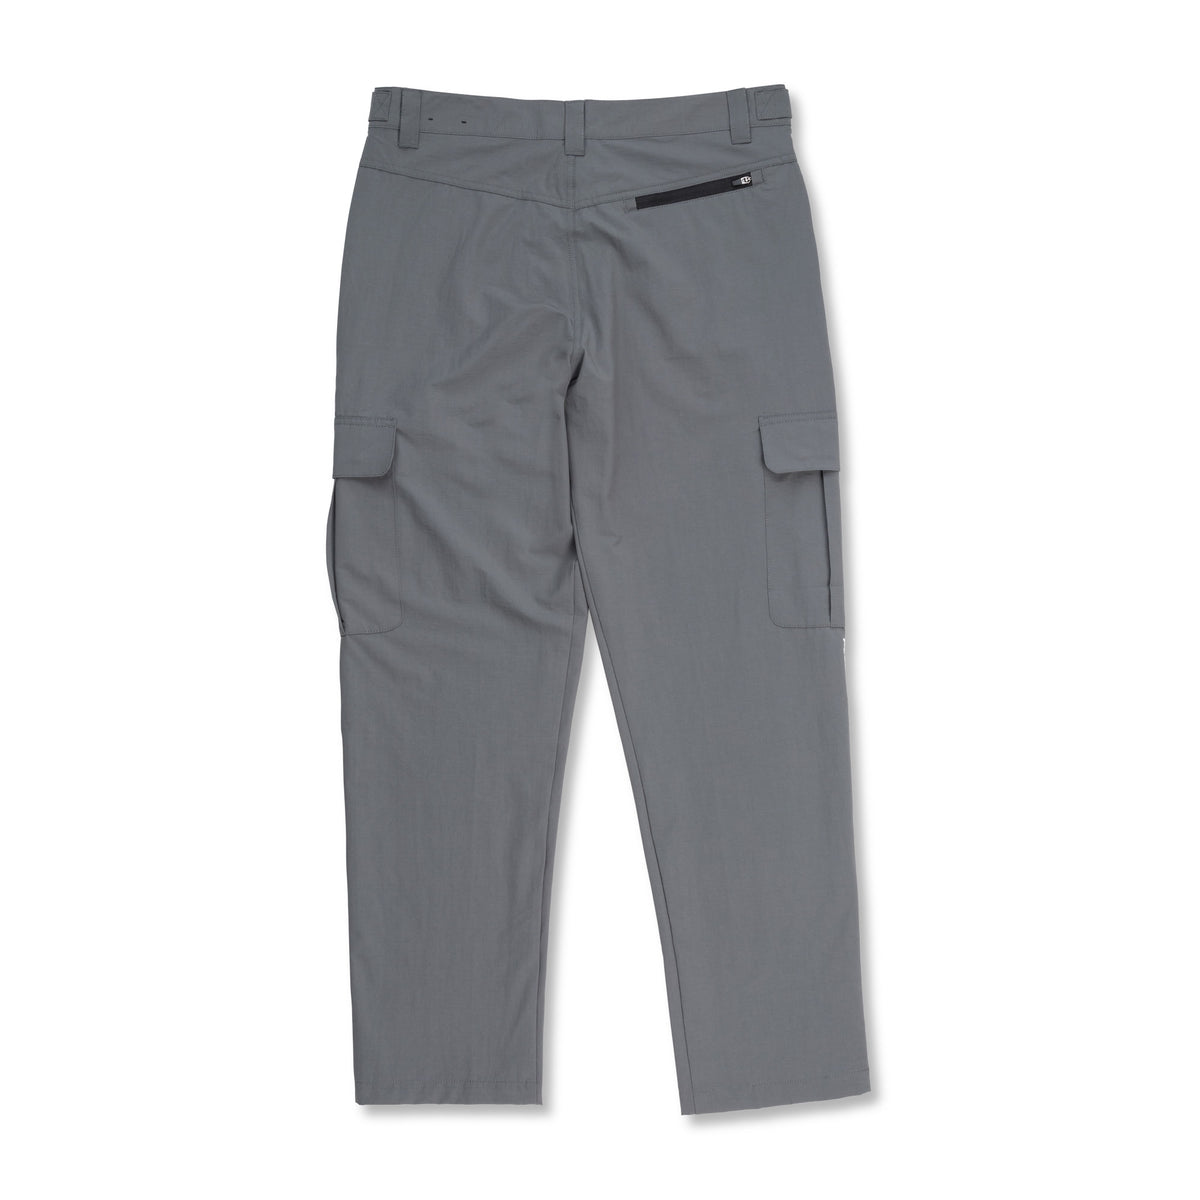 Polaris Fishing Pant Big Image - 2